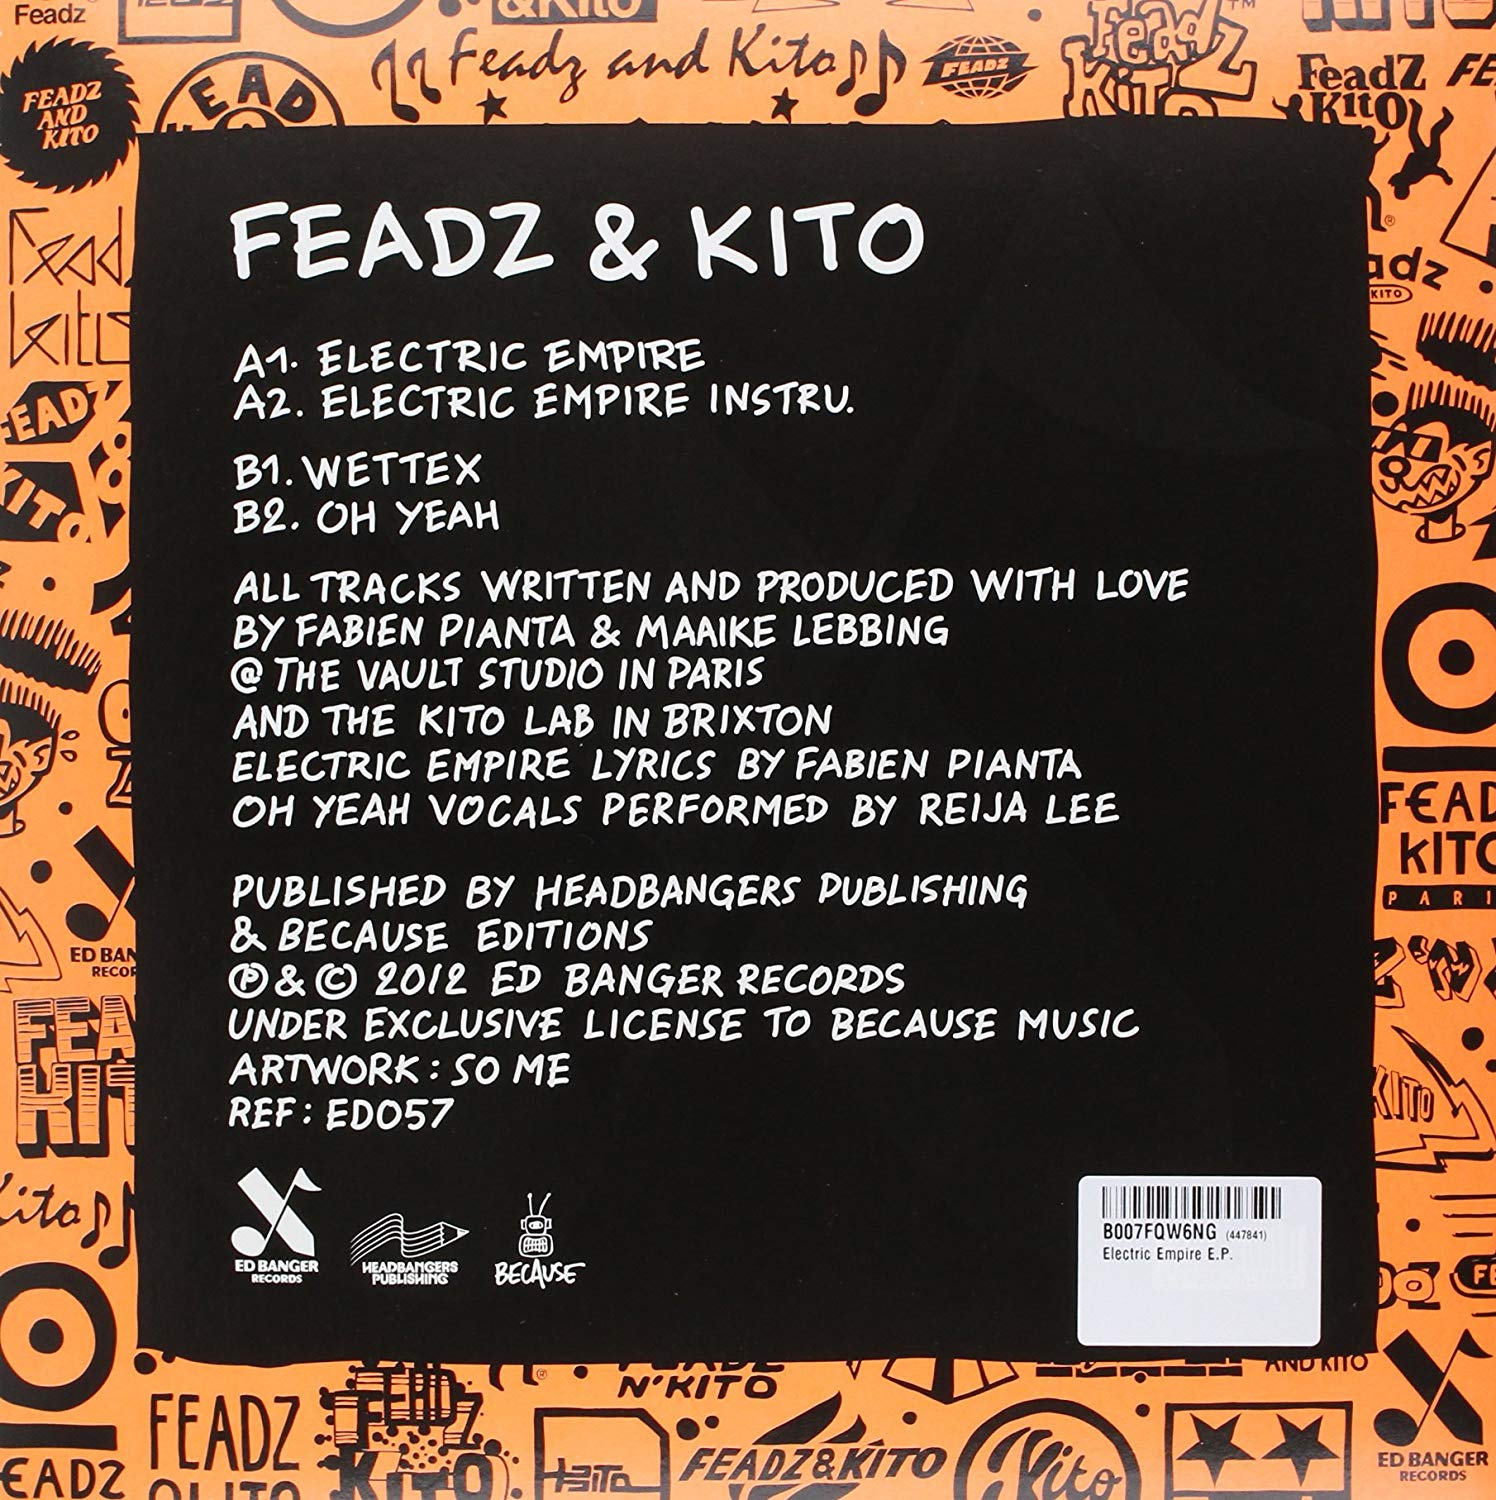 Ed banger Animated music video parallel studio feadz and kitto electric empire logo